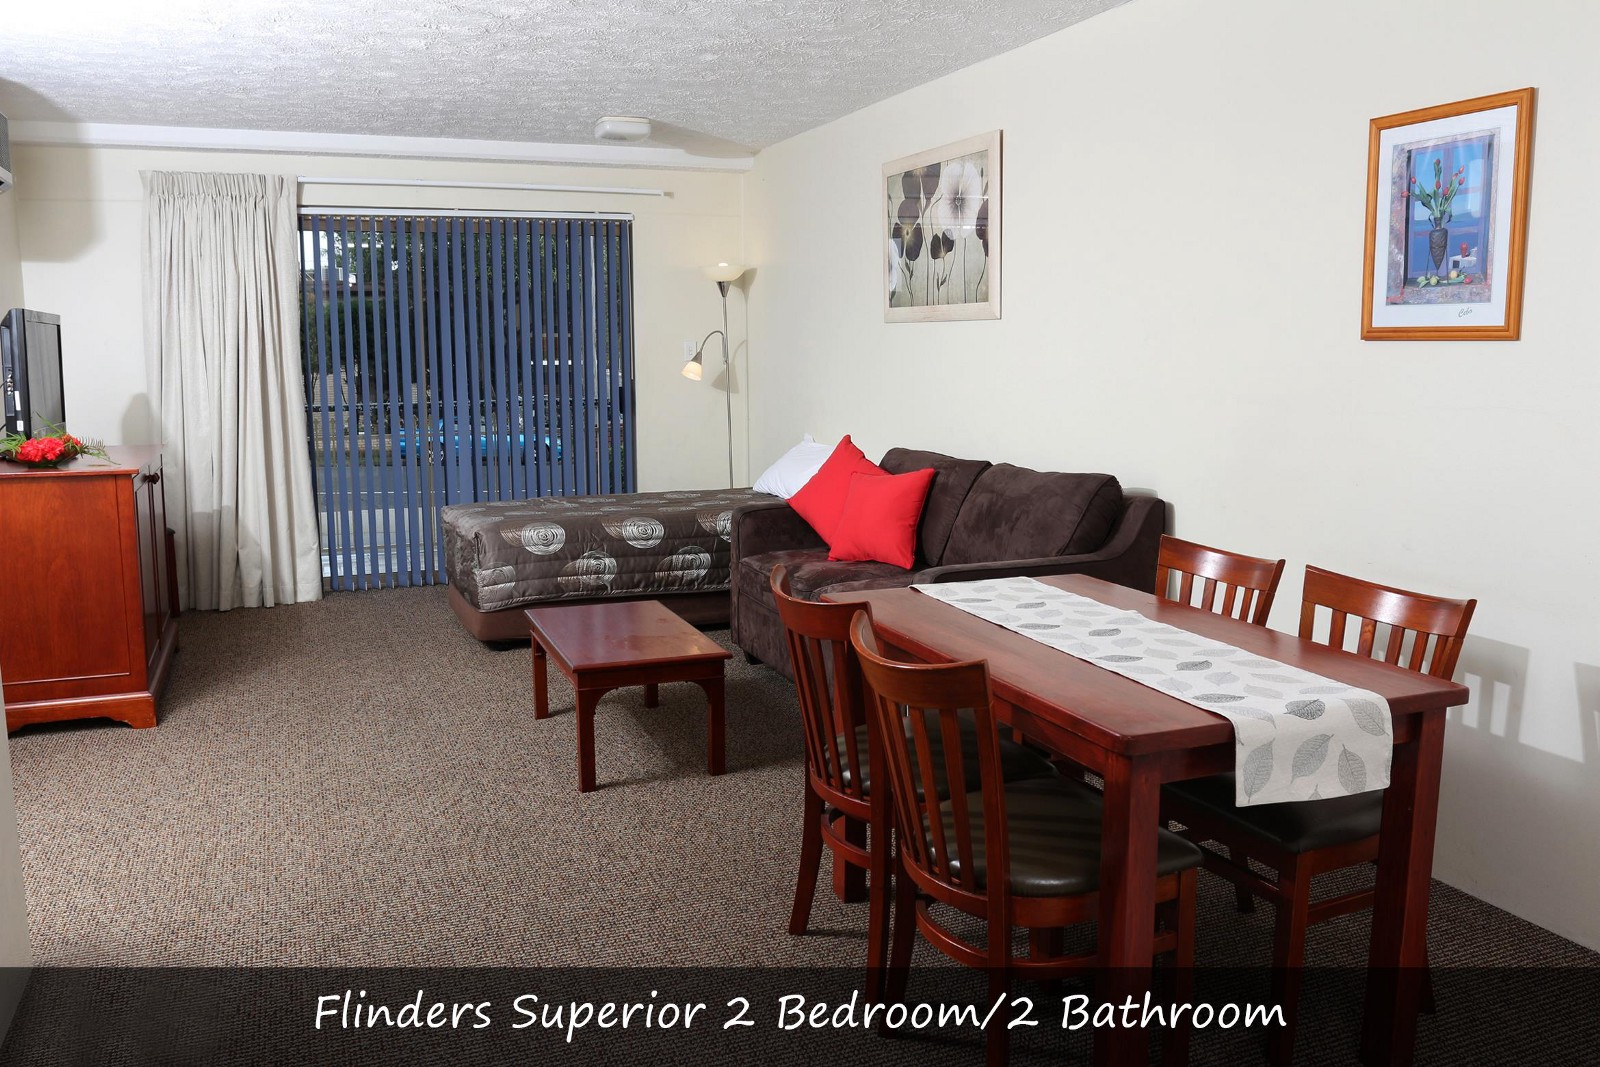 2 Bedroom Apartment Brisbane Cost Effective Place For 2 Bedroom Apartments In Brisbane Aabon